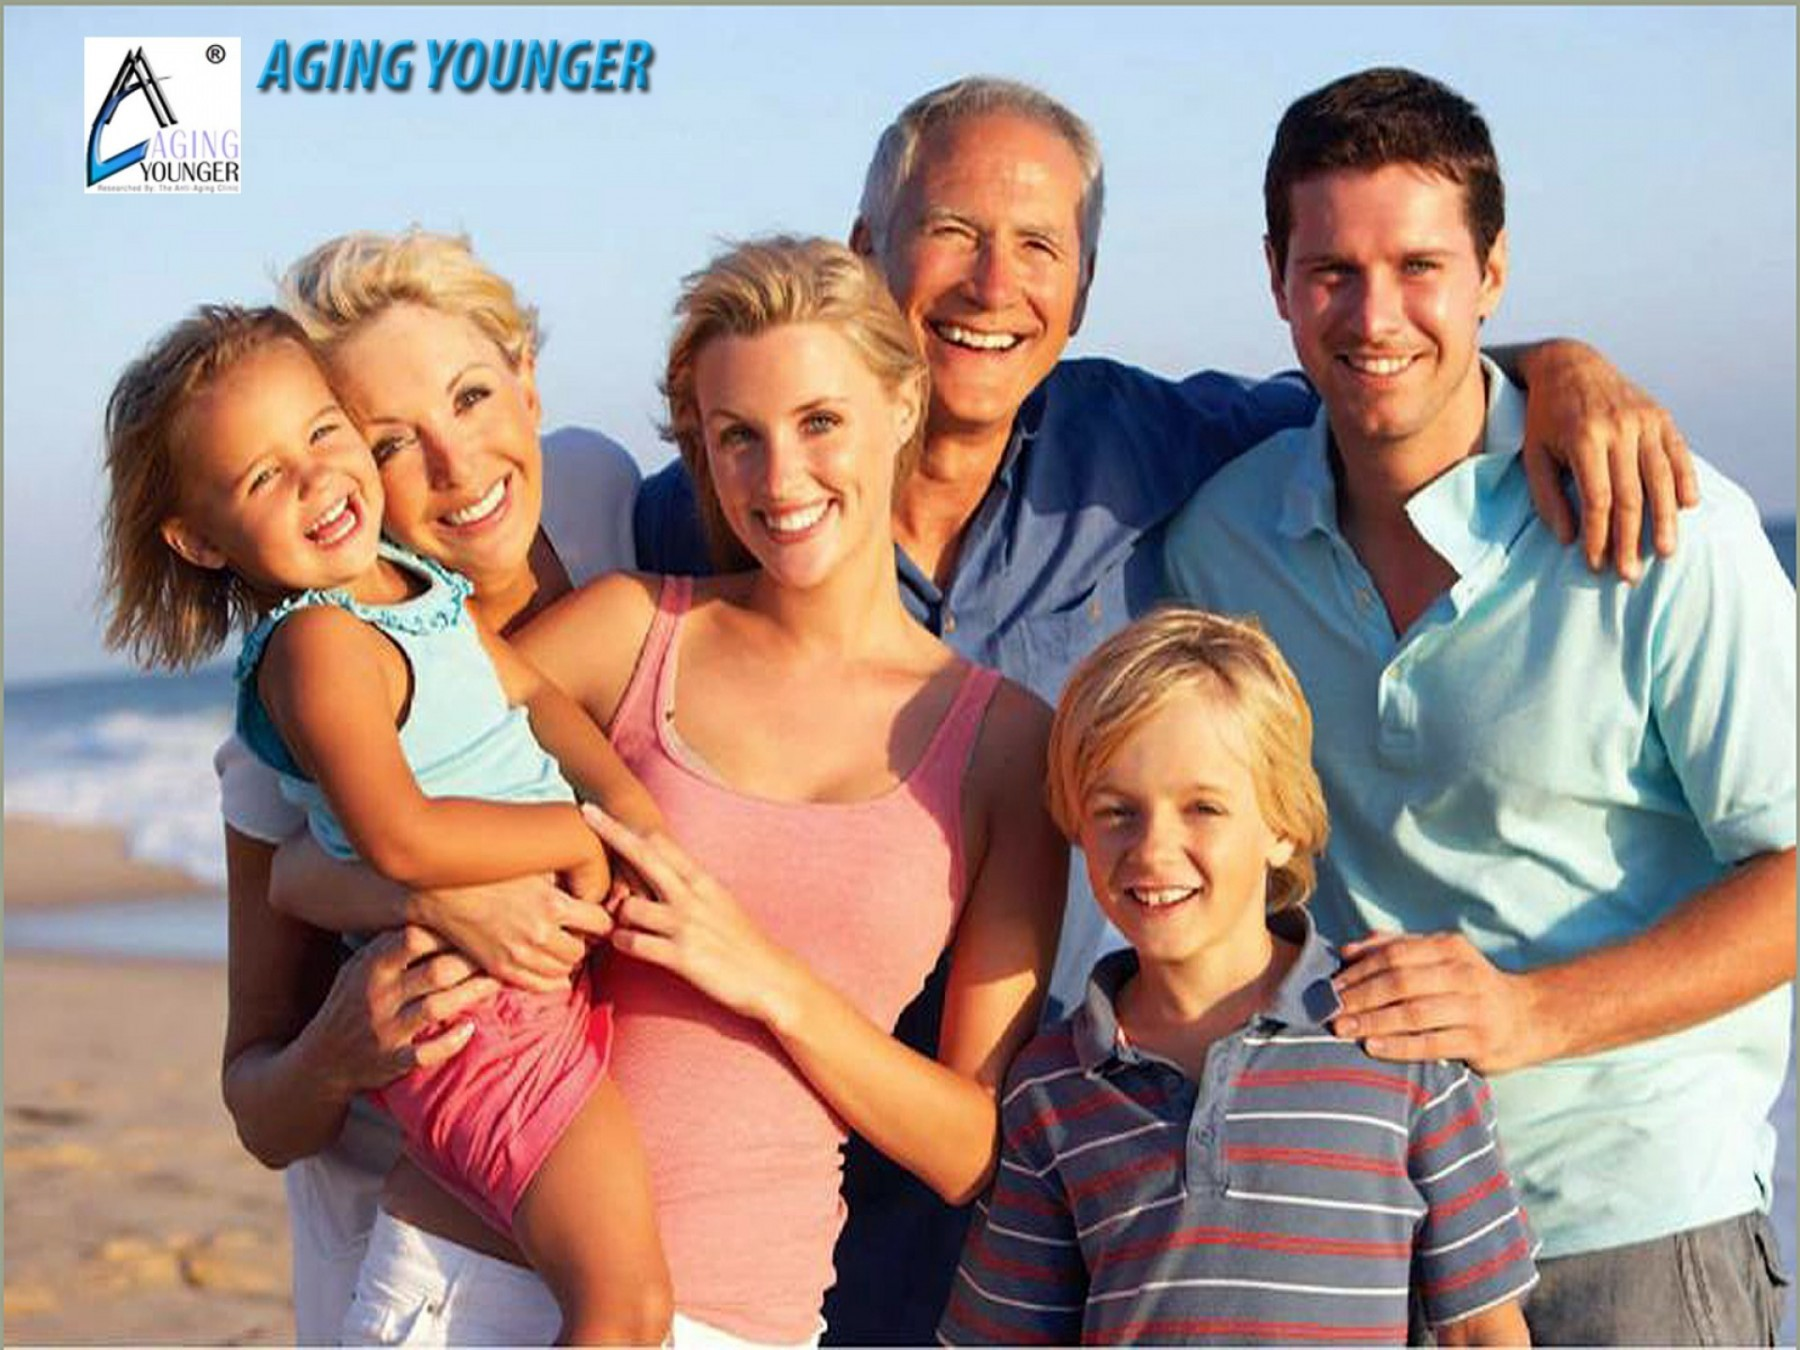 cropped-cropped-Aging-Younger-Background-Main21.jpg